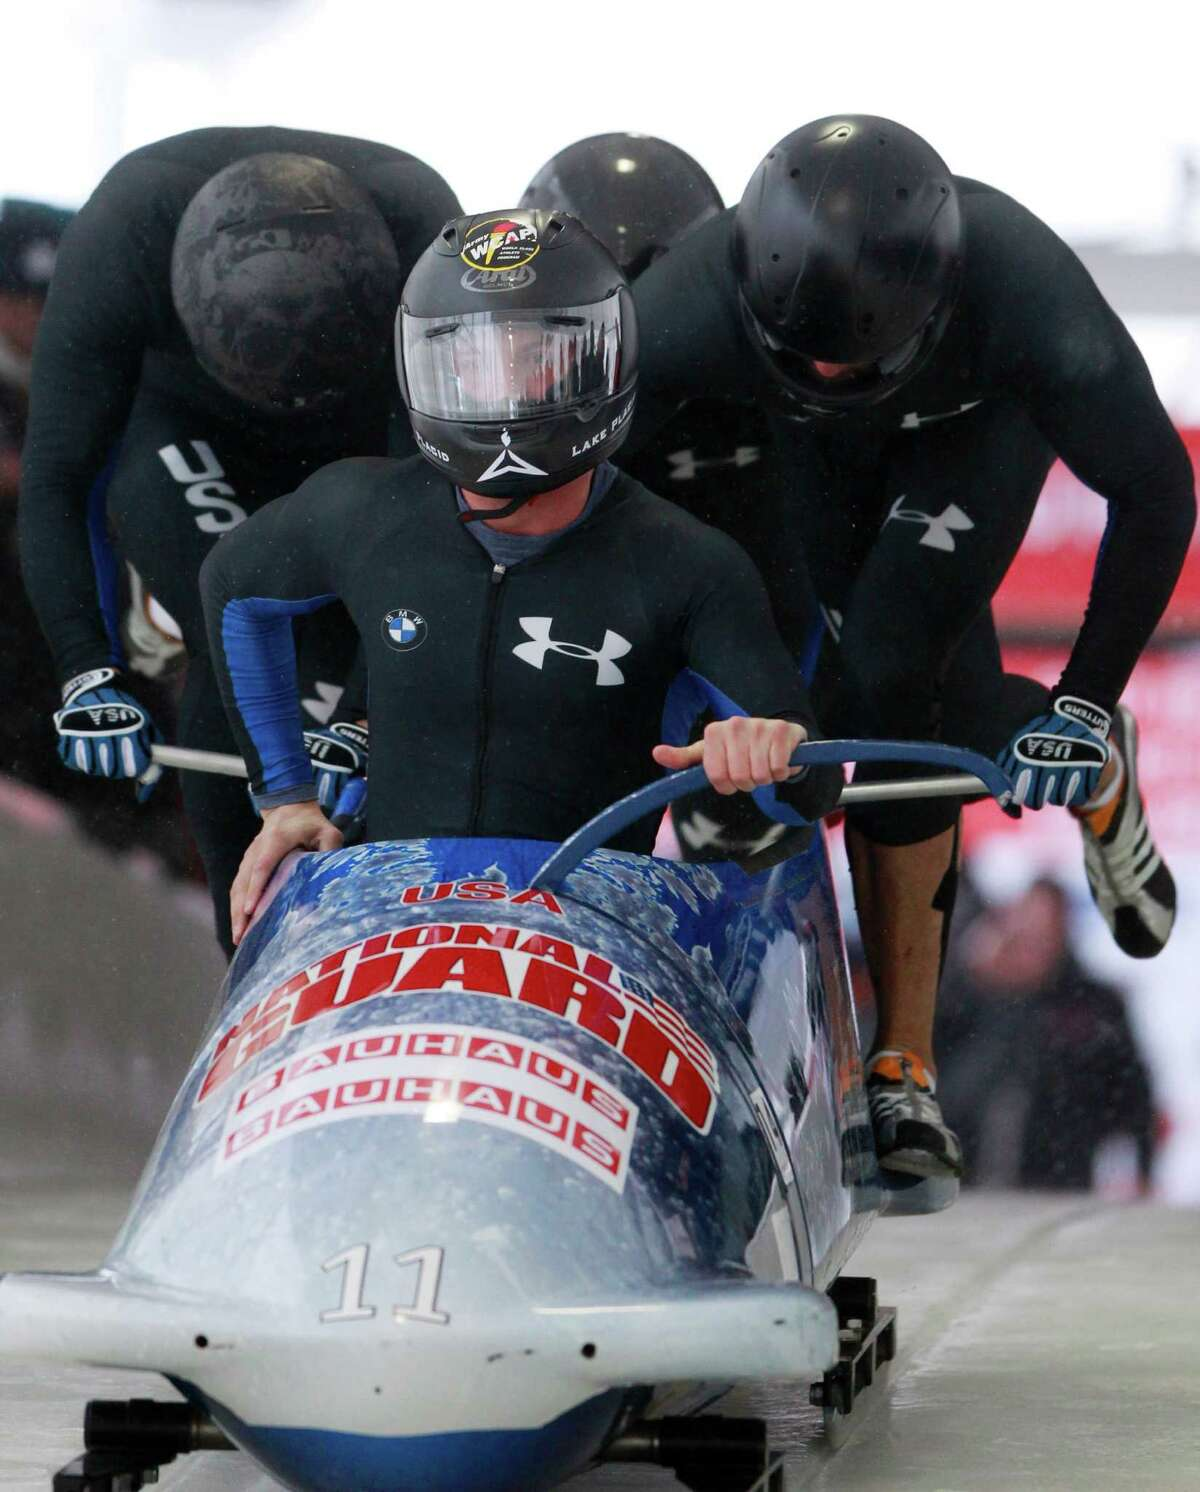 USA's pilot John Napier, front, with pushers Charles Berkeley, Adam Clark and brakeman Christopher Fogt, start their first heat in the men's four-man Bobsled World Championships in Lake Placid, N.Y., on Saturday, Feb. 25, 2012. (AP Photo/Mike Groll)